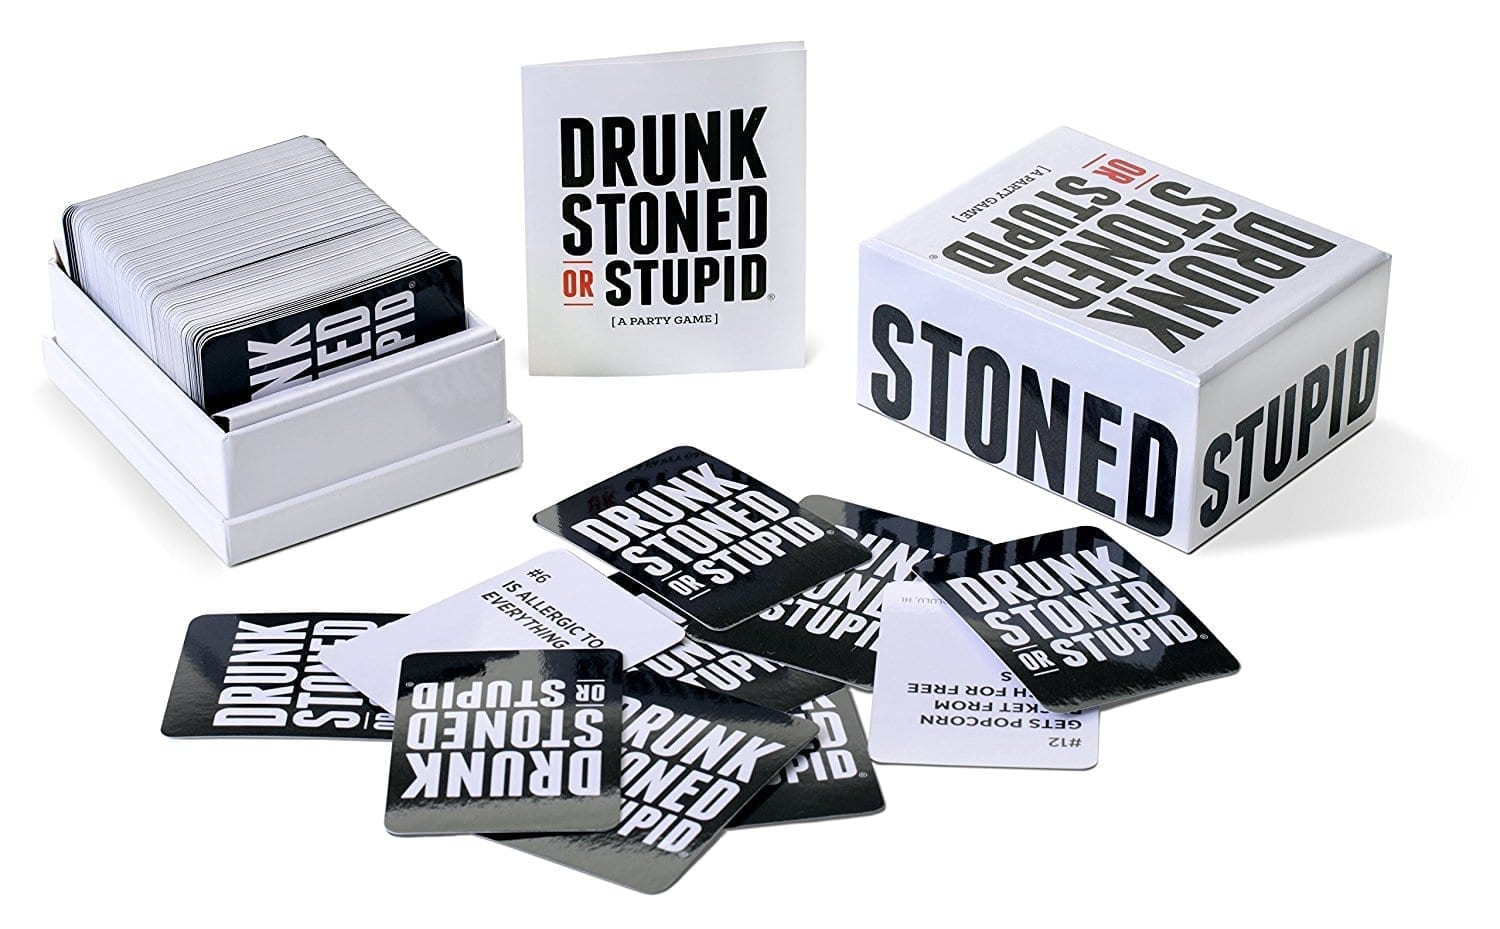 Drunk Stoned or Stupid Contents